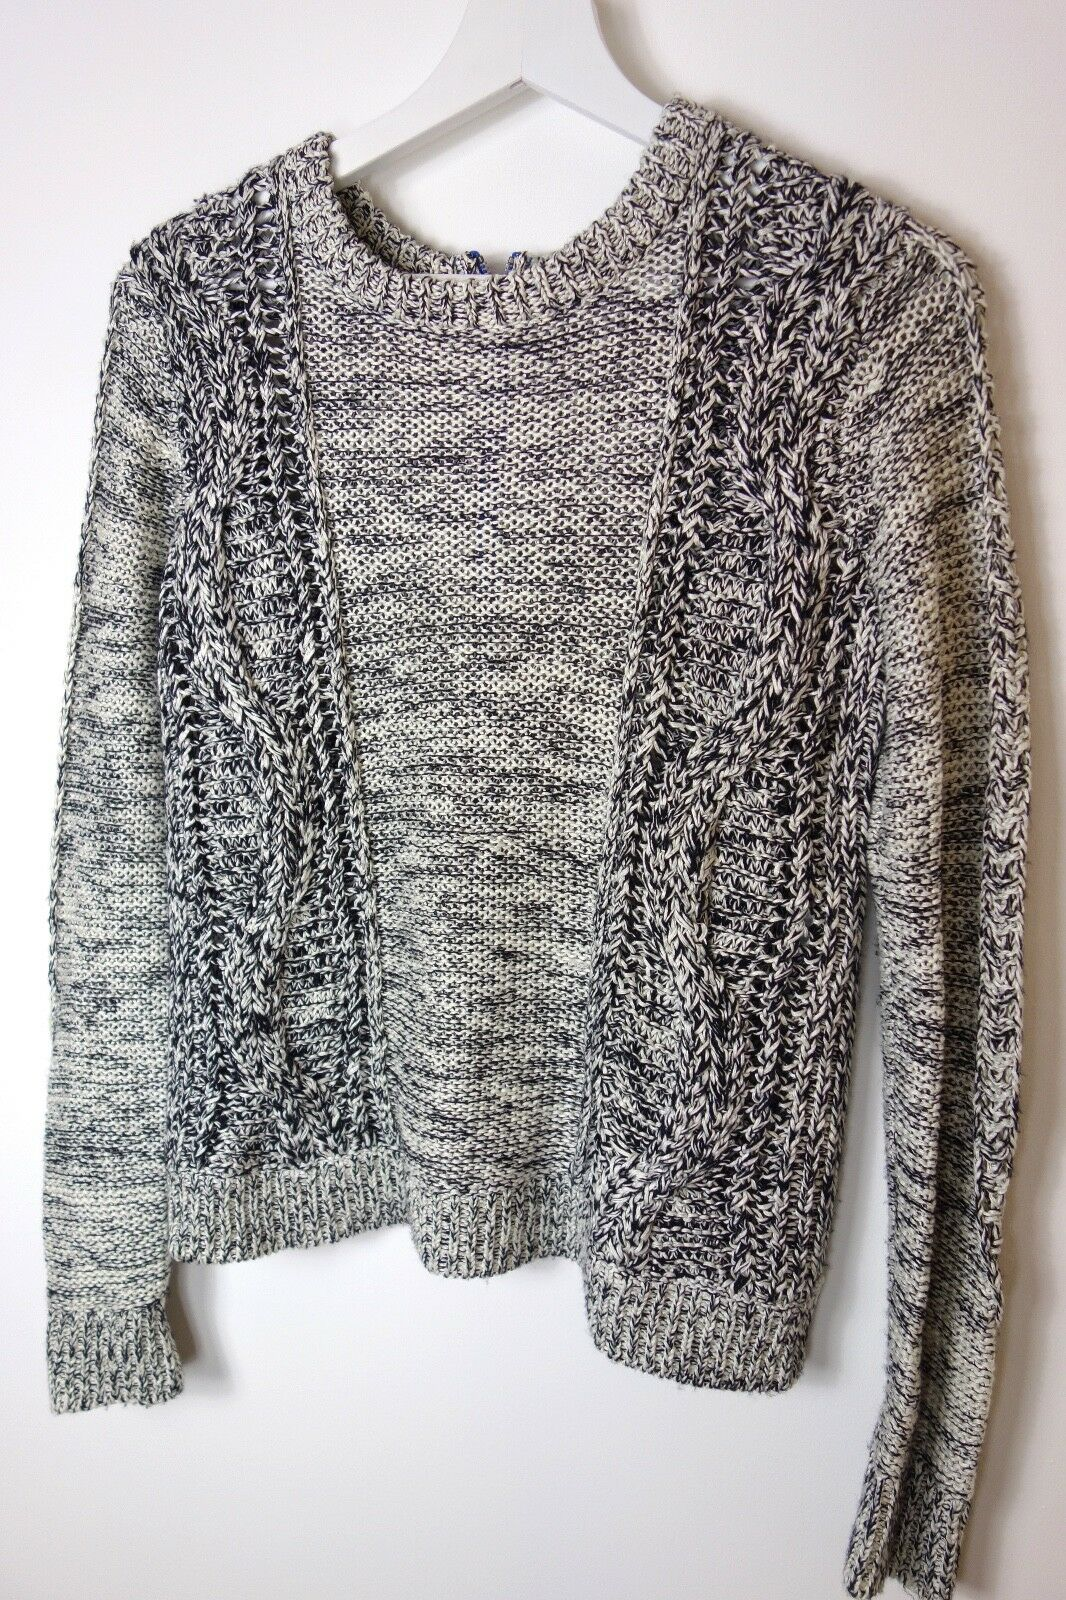 Diane von Furstenberg Furstenberg Furstenberg Ettie Cable-Knit Sweater, DVF size S c4f61f